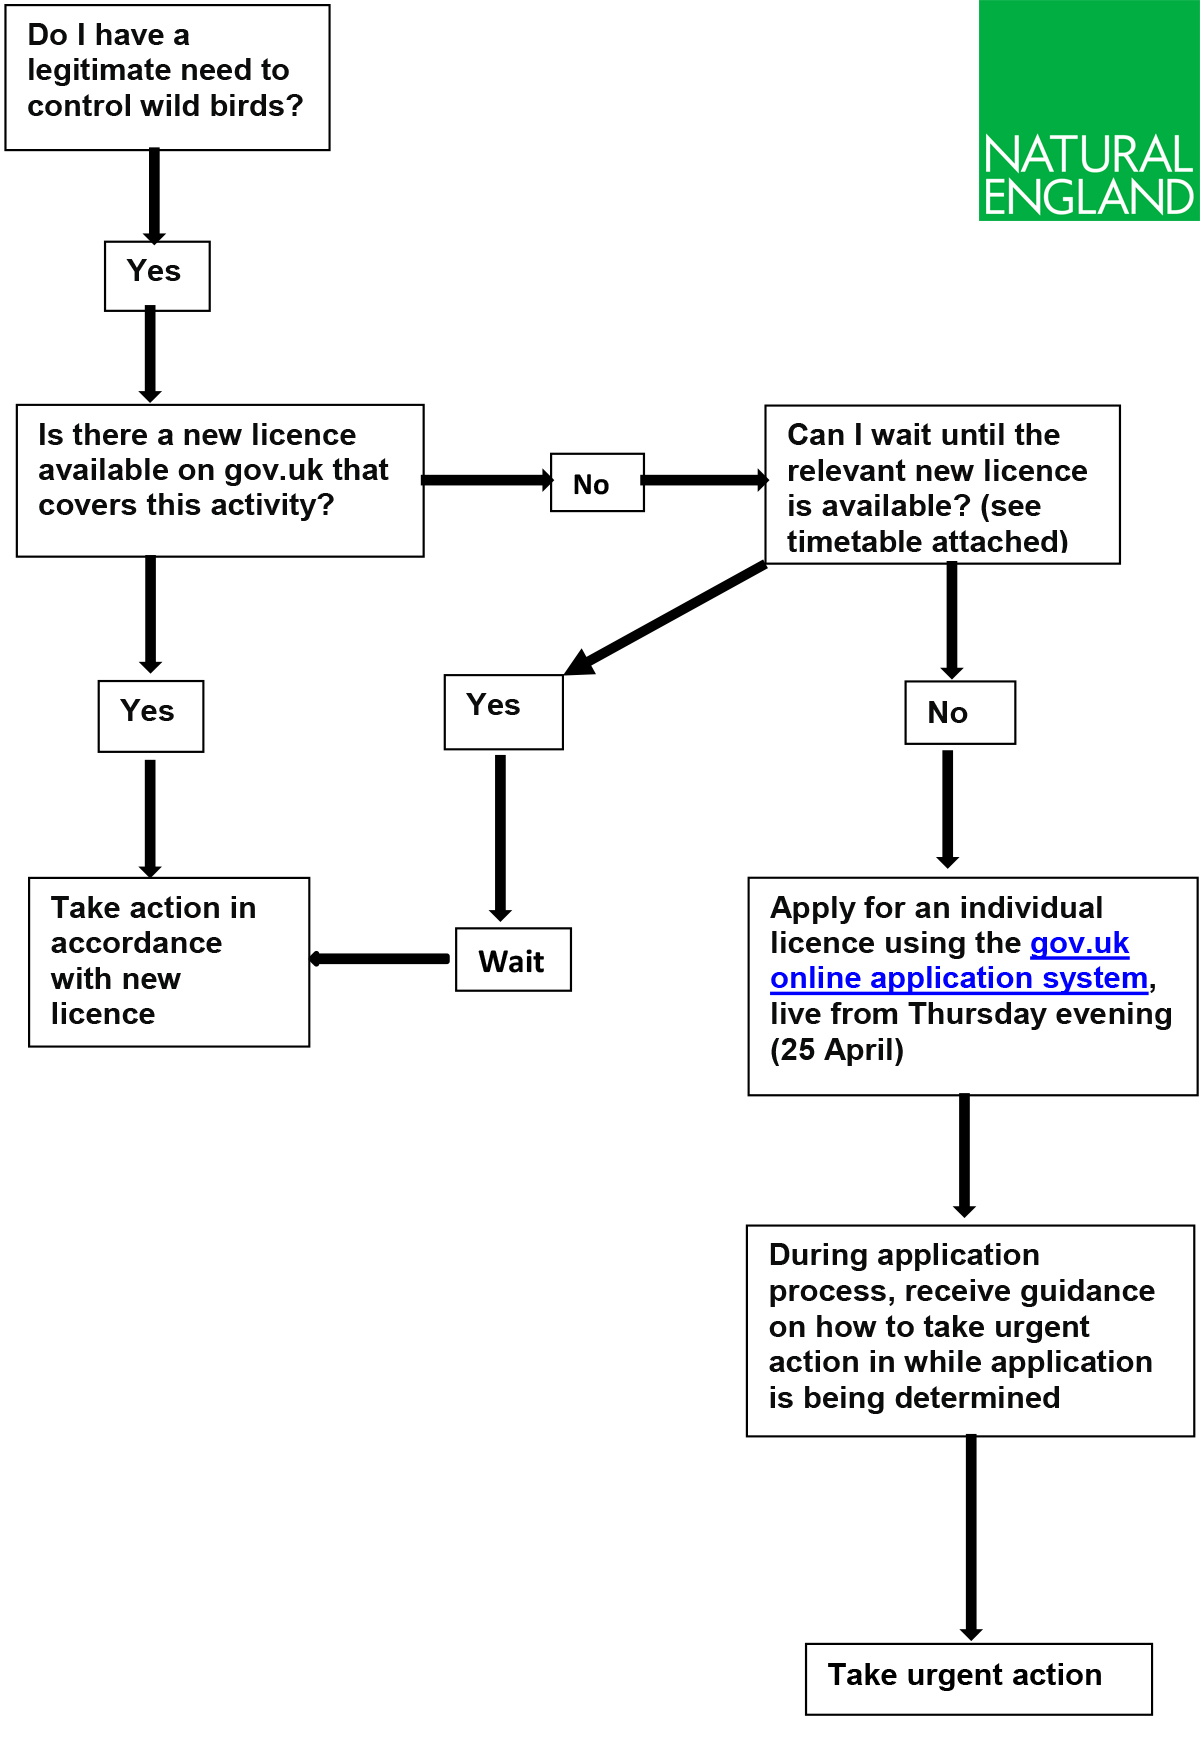 Flowchart for interim measures